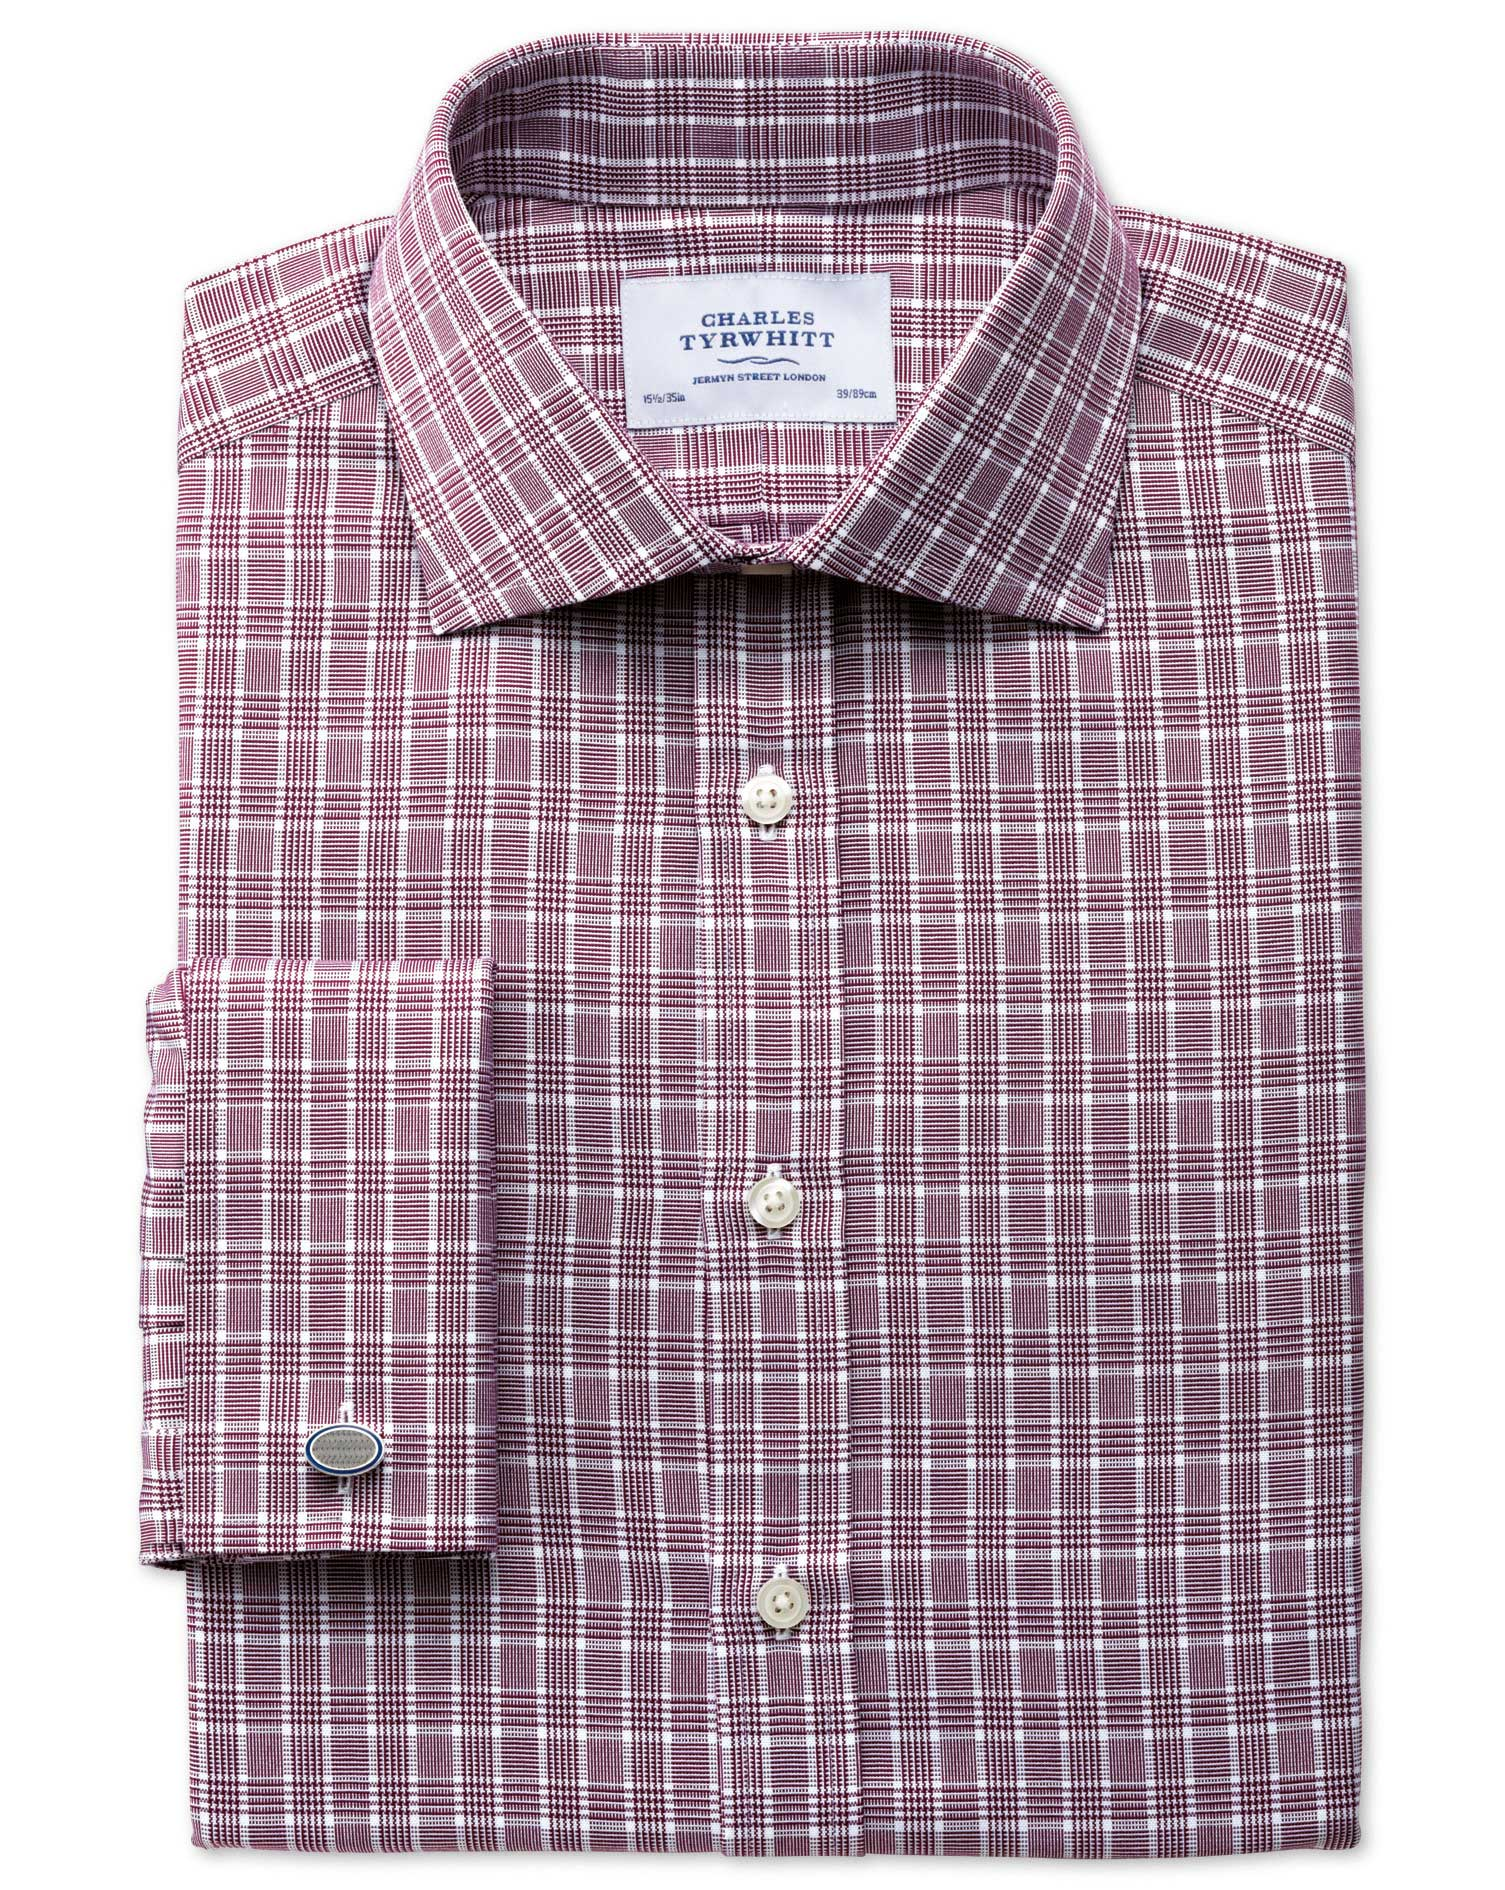 Slim Fit Prince Of Wales Basketweave Berry Cotton Formal Shirt Double Cuff Size 14.5/33 by Charles T